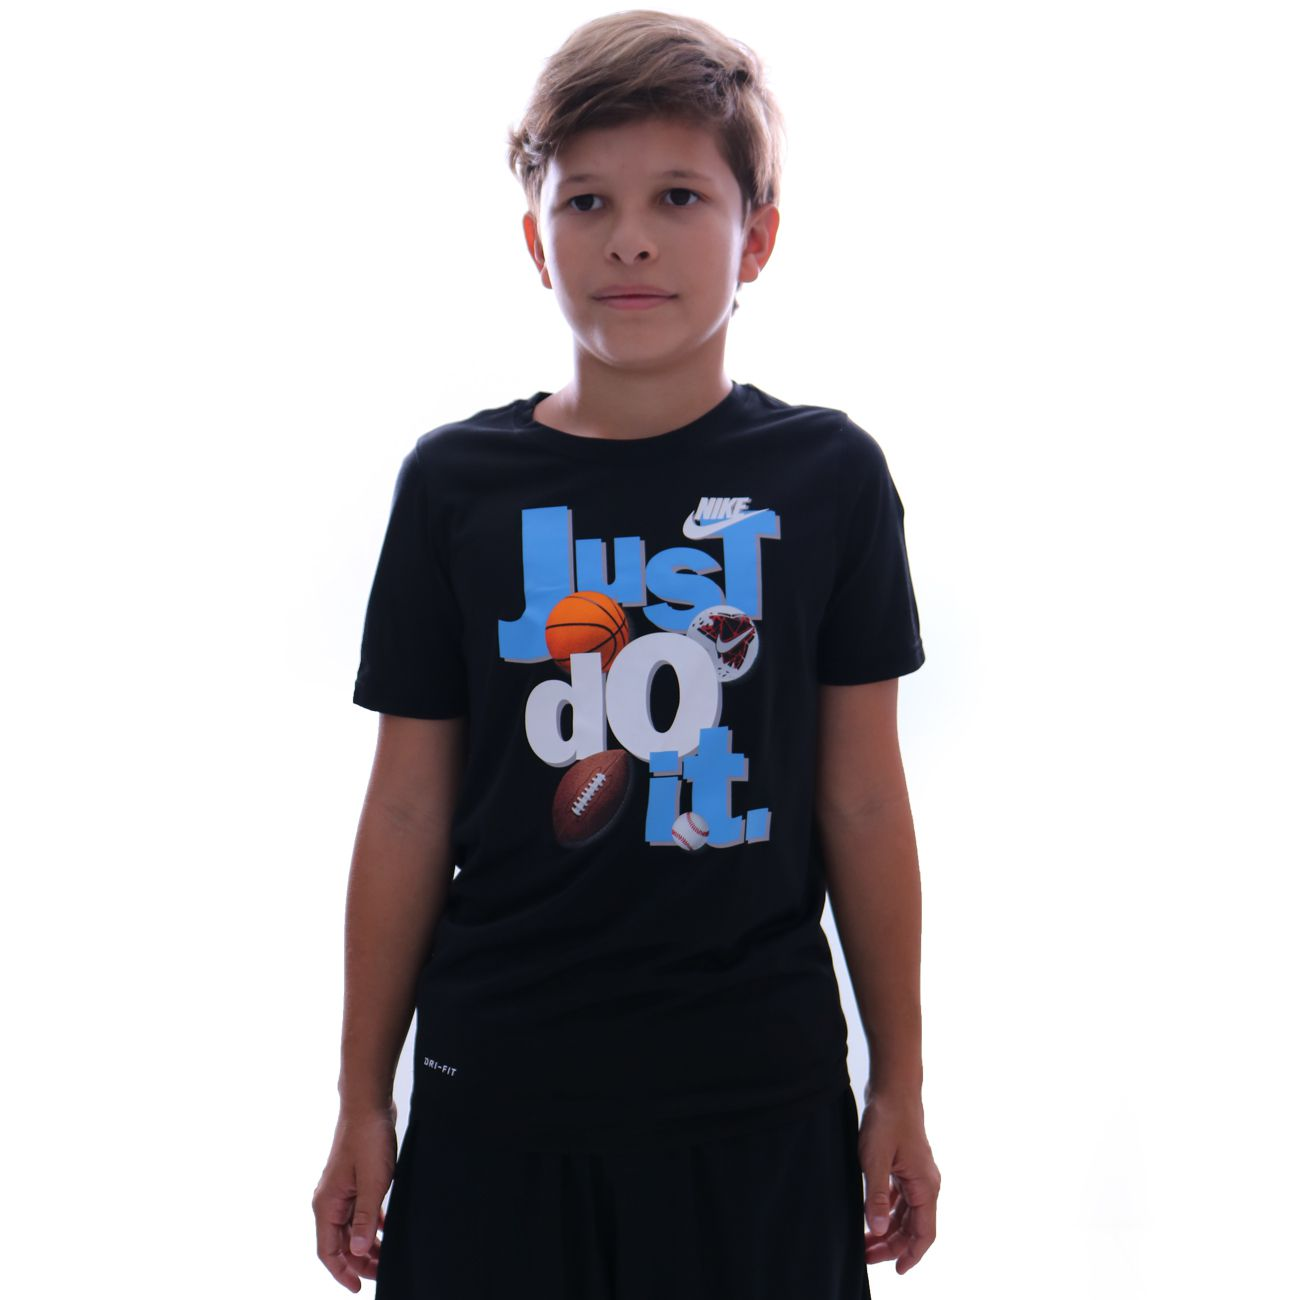 Camiseta Nike Just Do It Infantil